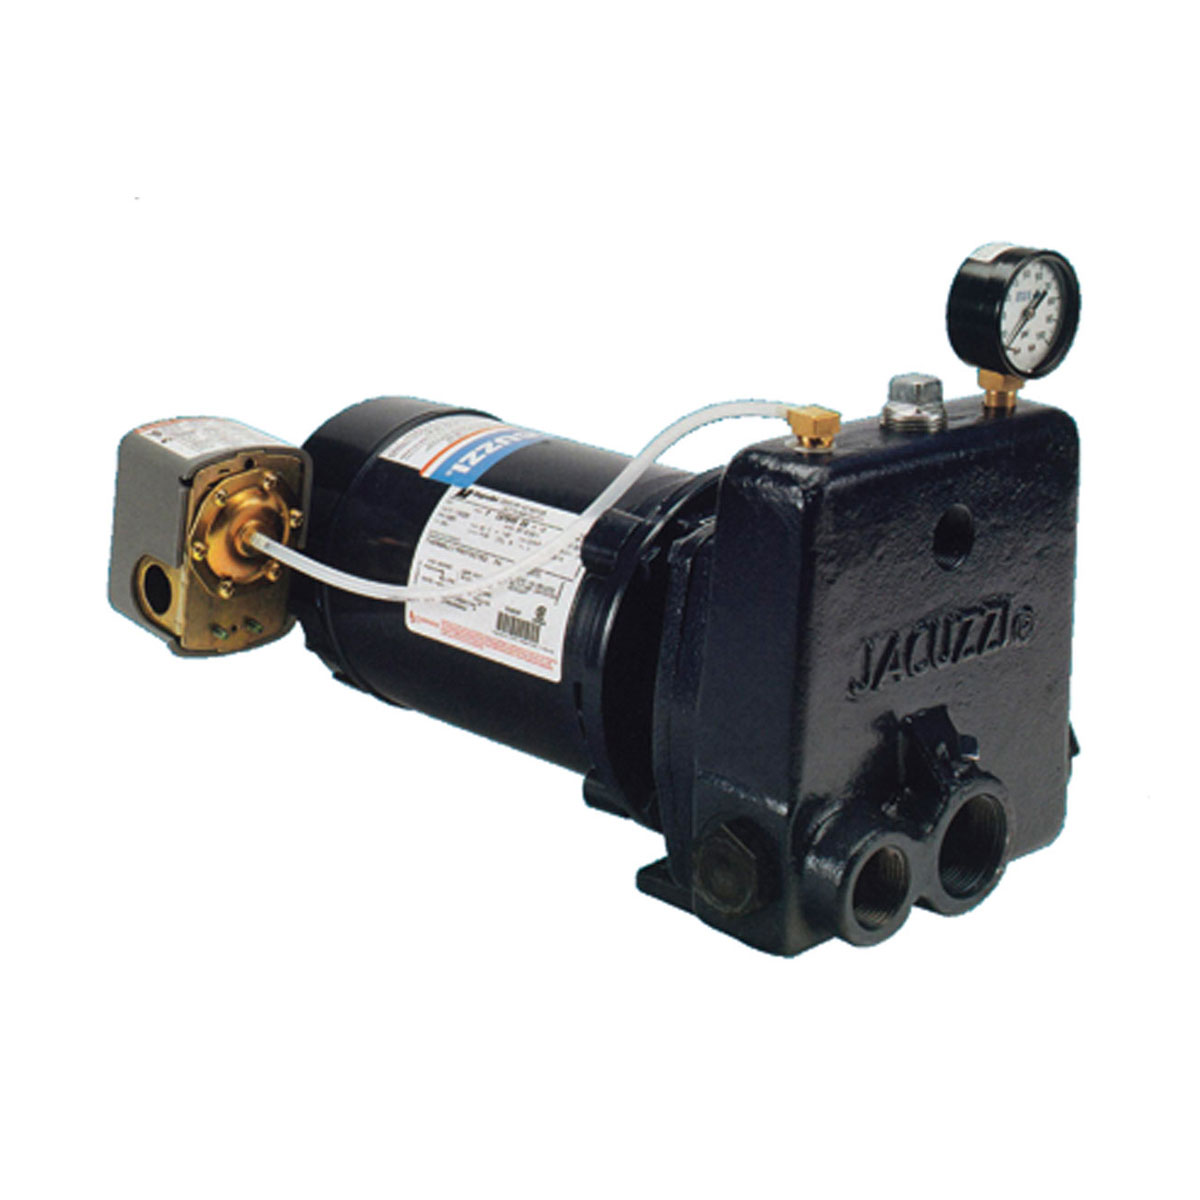 Franklin 7C-S (3/4 HP, 115/230v) Cast Iron Jet Pump on